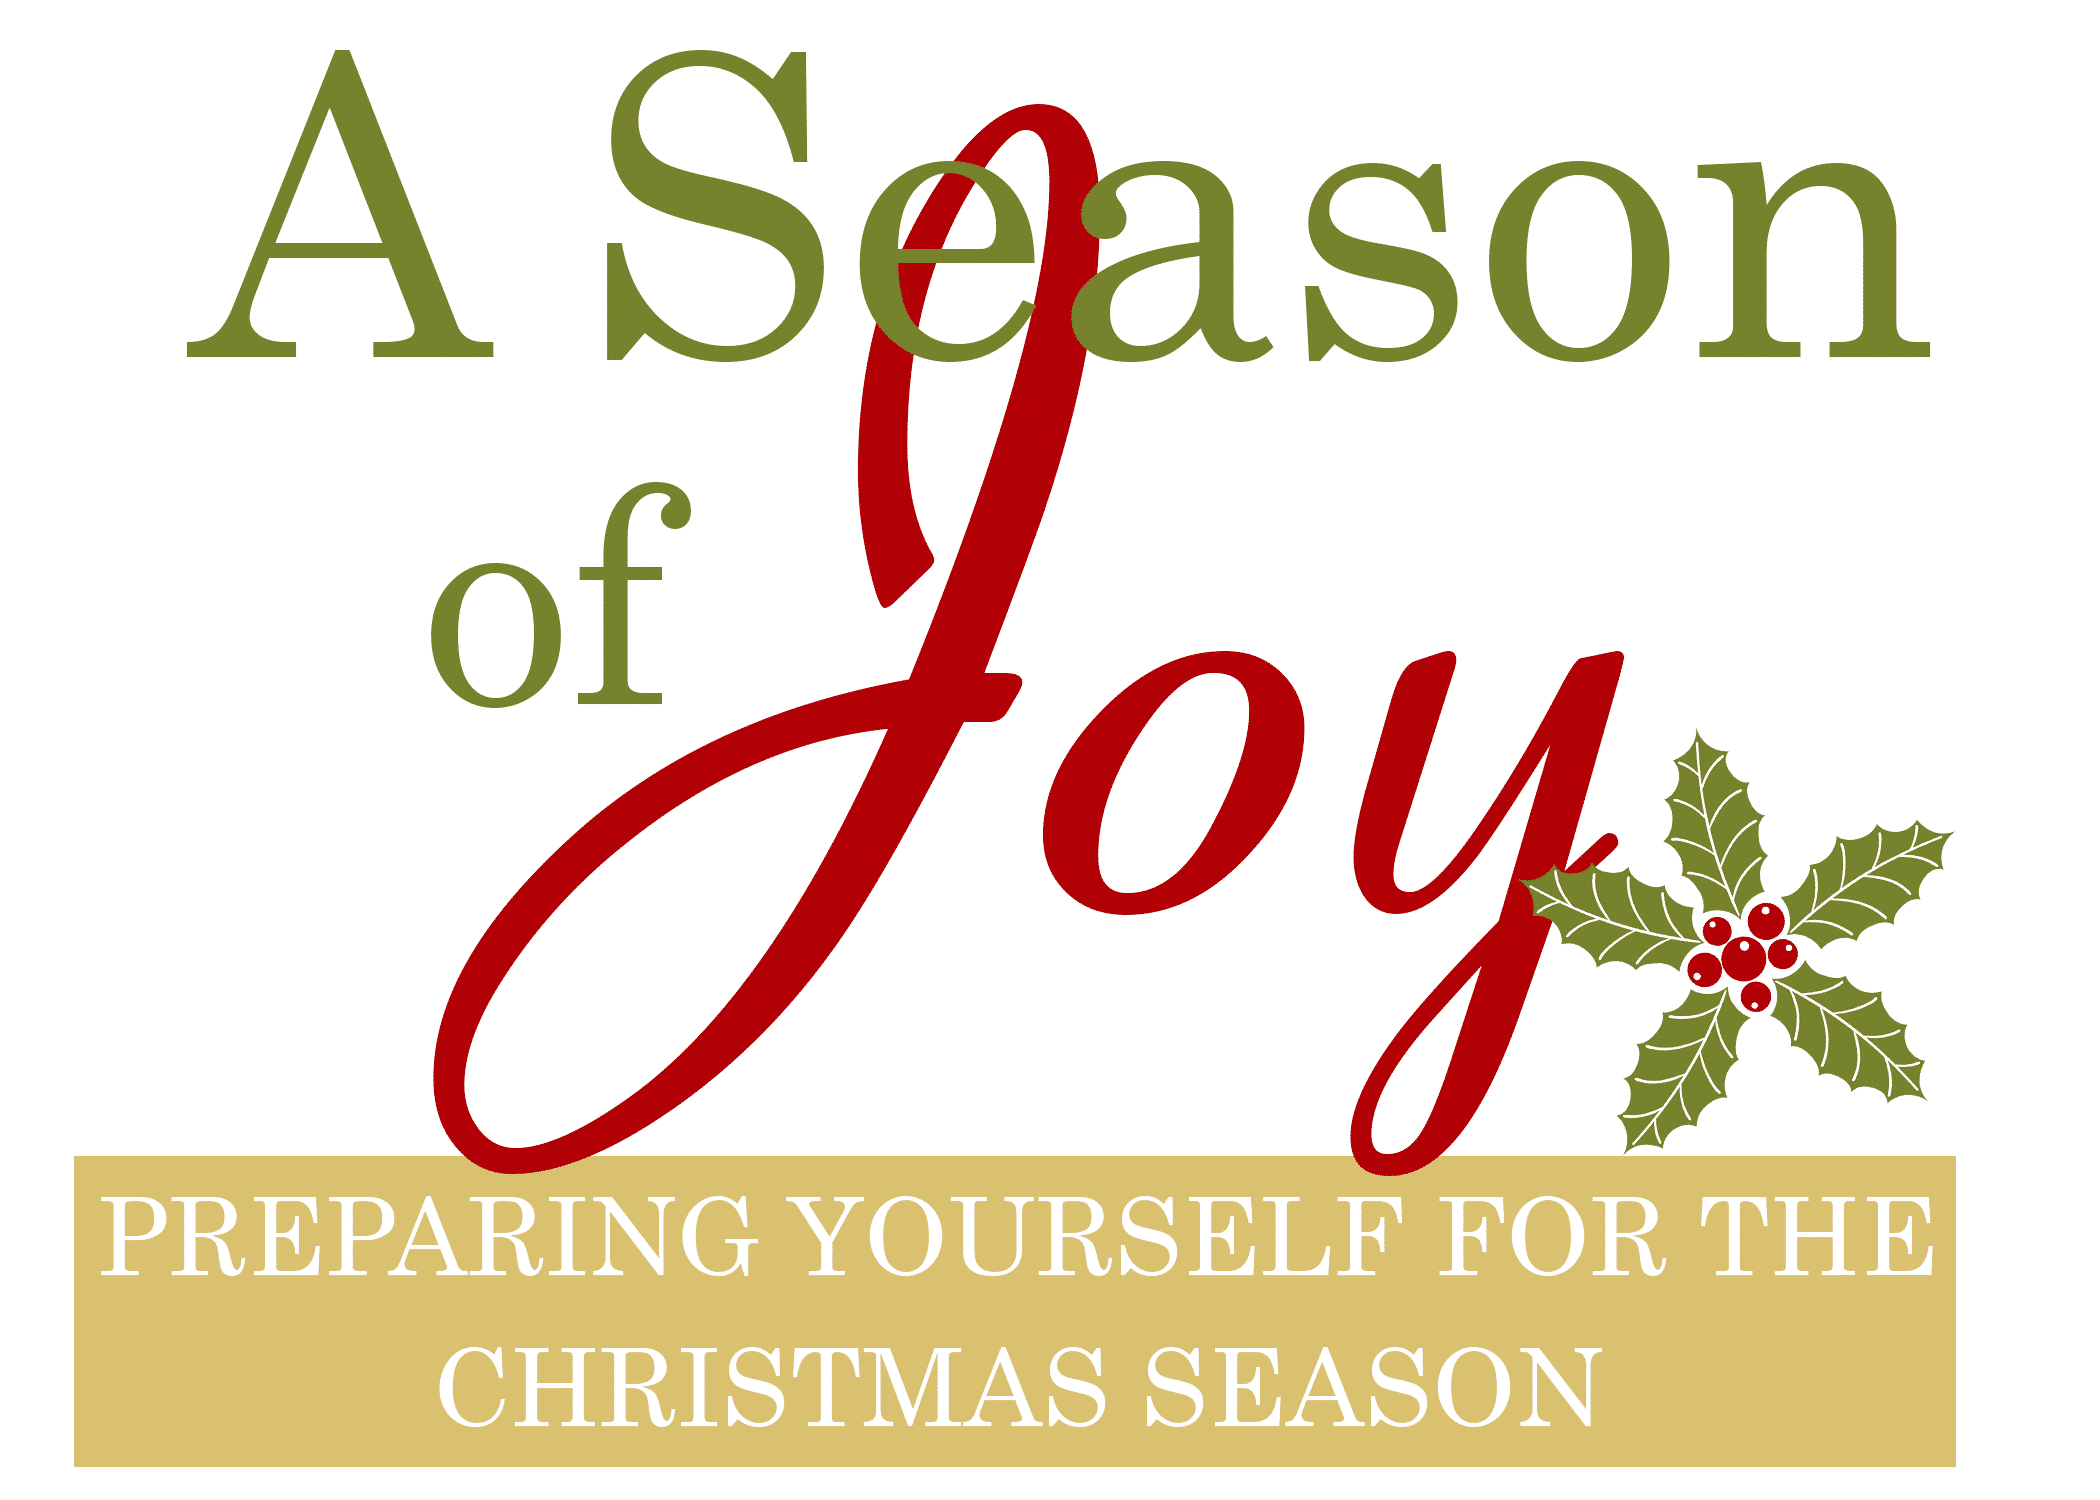 A season of joy year round homeschooling each day throughout a season of joy youll be focusing on one scripture a day the first ten days youll be meditating on the peace of god and take time to kristyandbryce Image collections